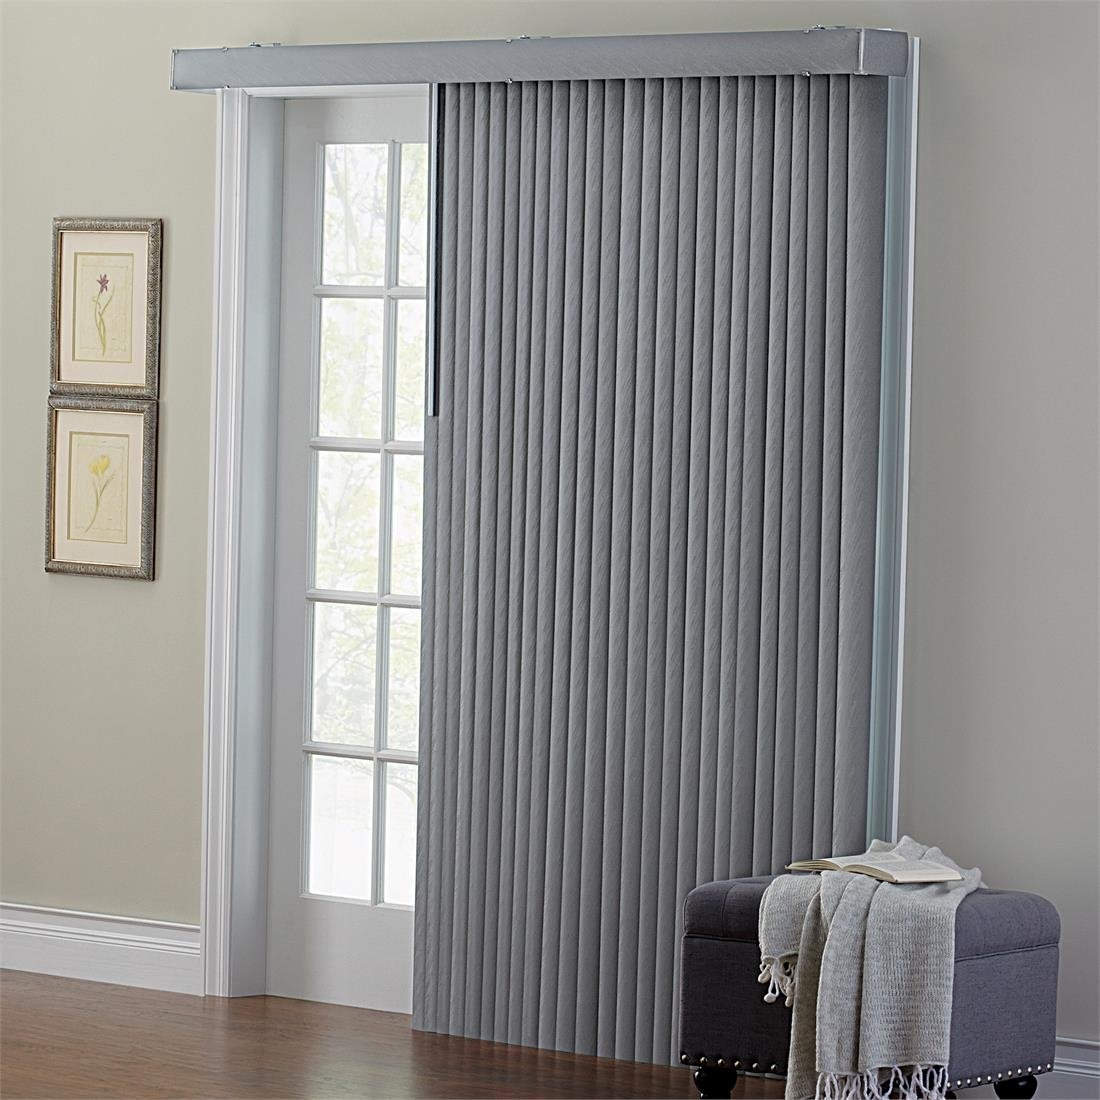 Vertical Blinds For Kitchen Sliding Doors